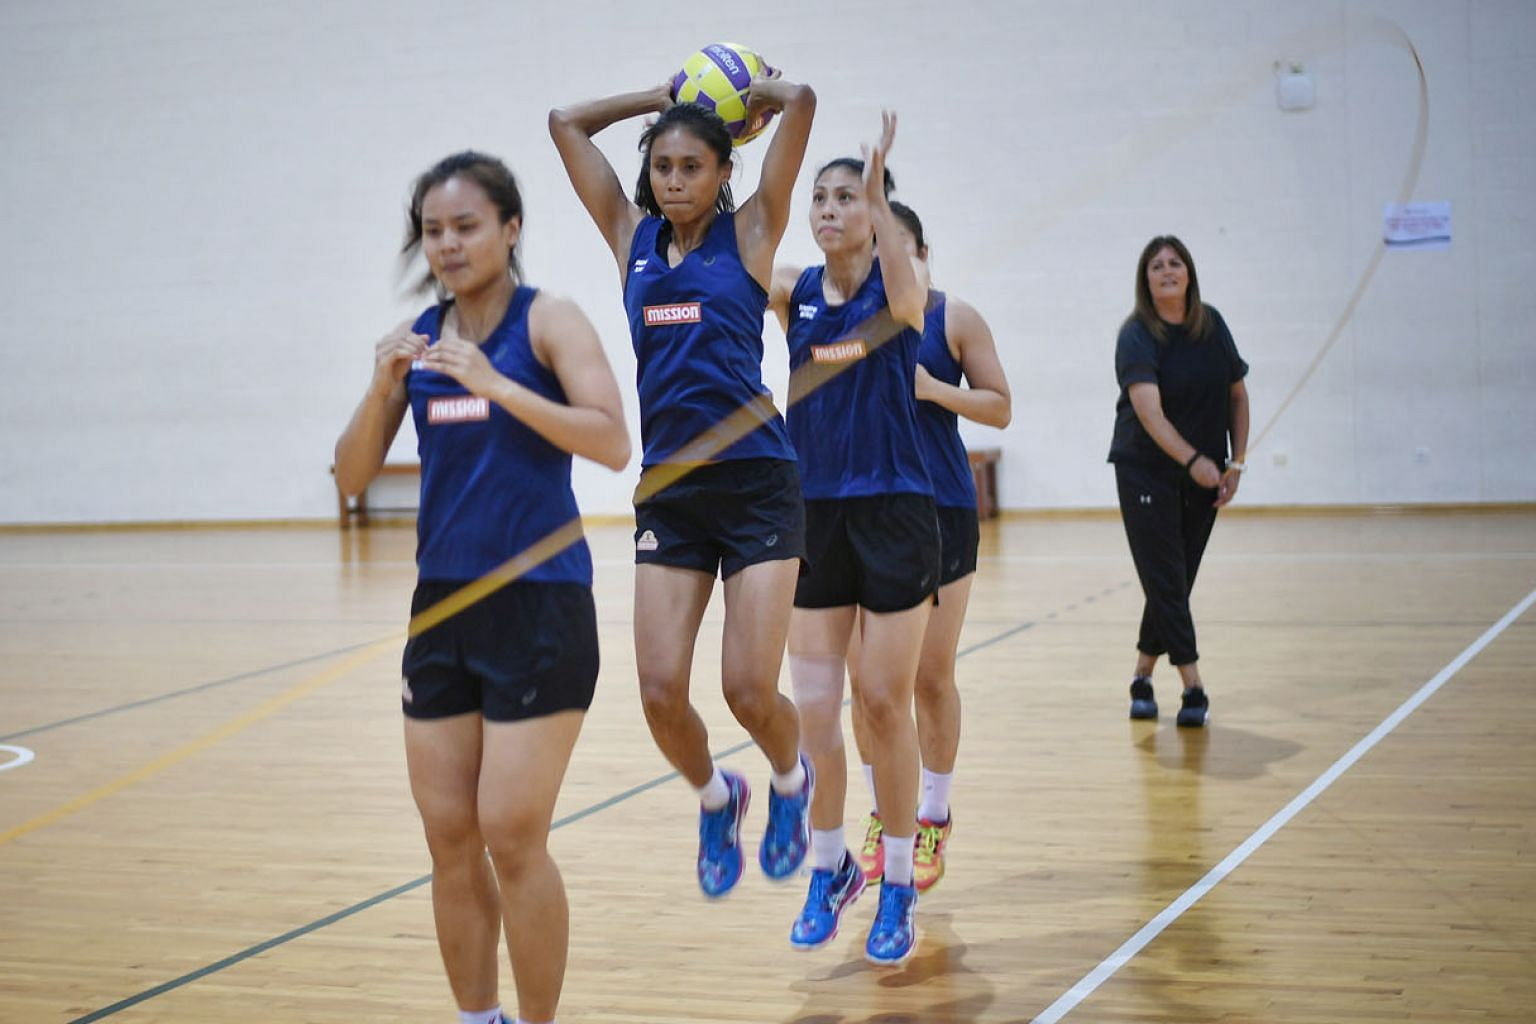 Singapore co-vice captain Nurul Baizura (with ball) and her team-mates training as coach Natalie Milicich draws the rope.